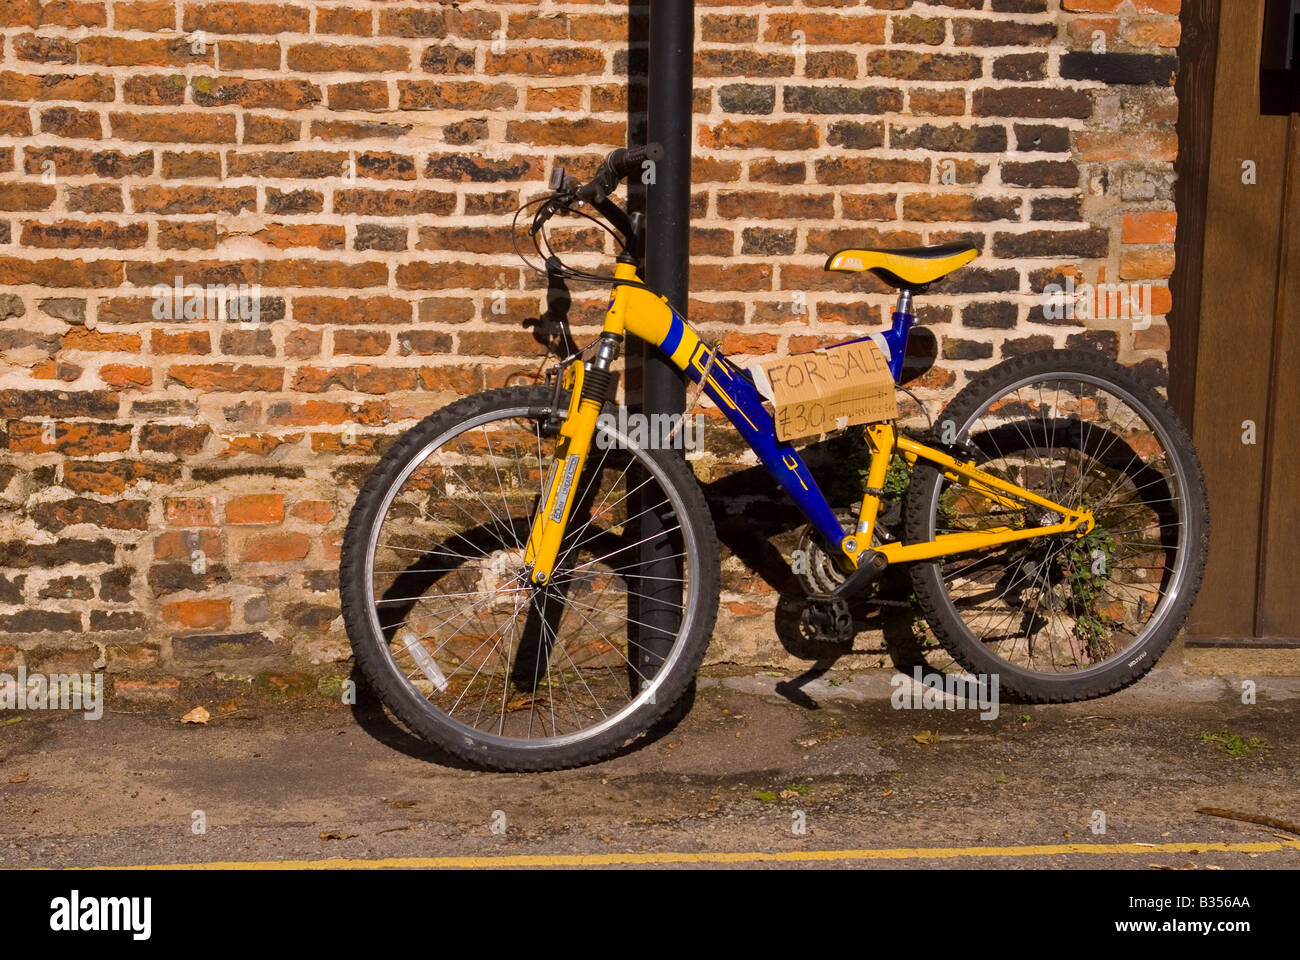 Bike For Sale Stock Photos & Bike For Sale Stock Images - Alamy